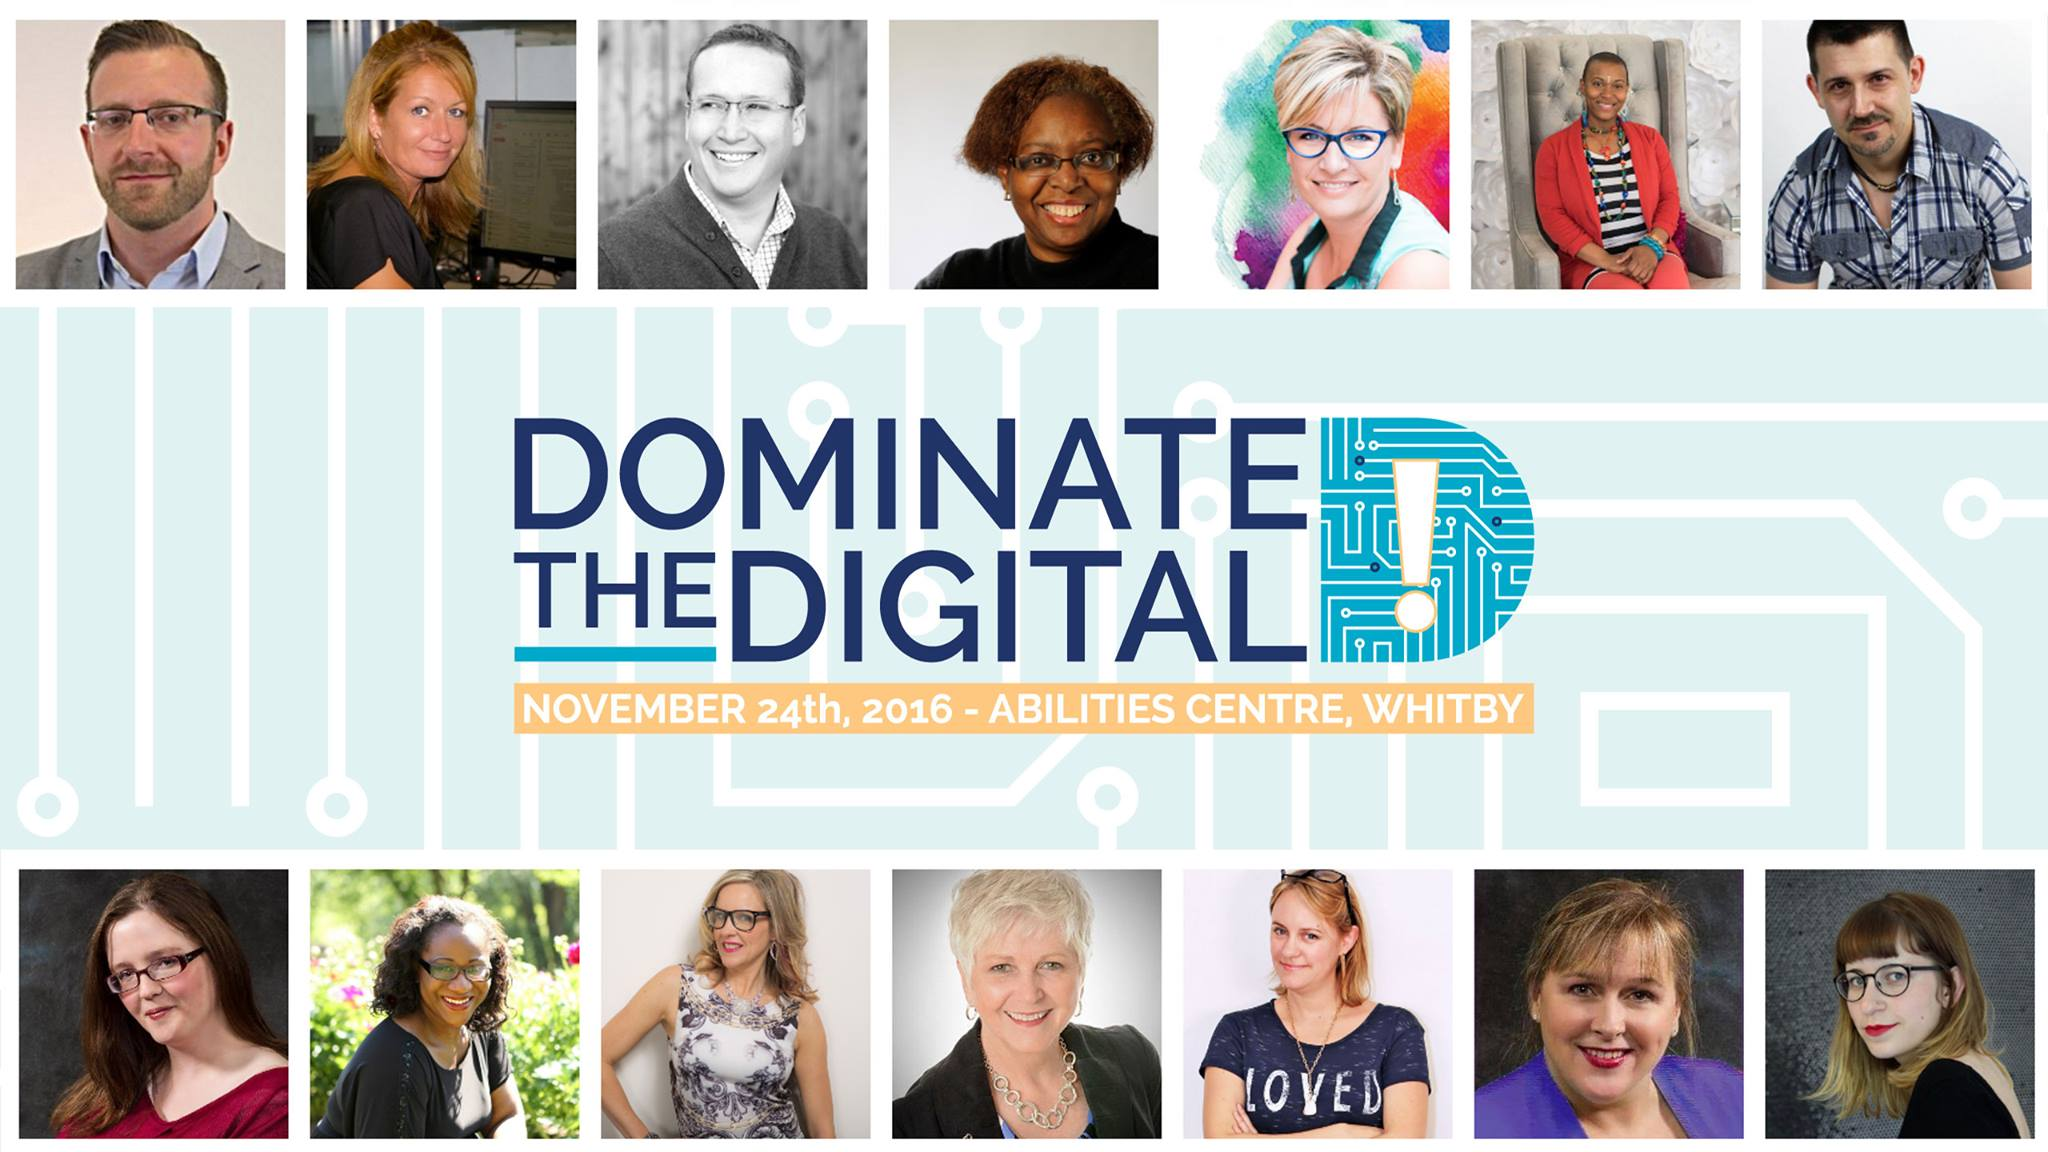 Dominate The Digital Nov.24, 2016 Durham Region